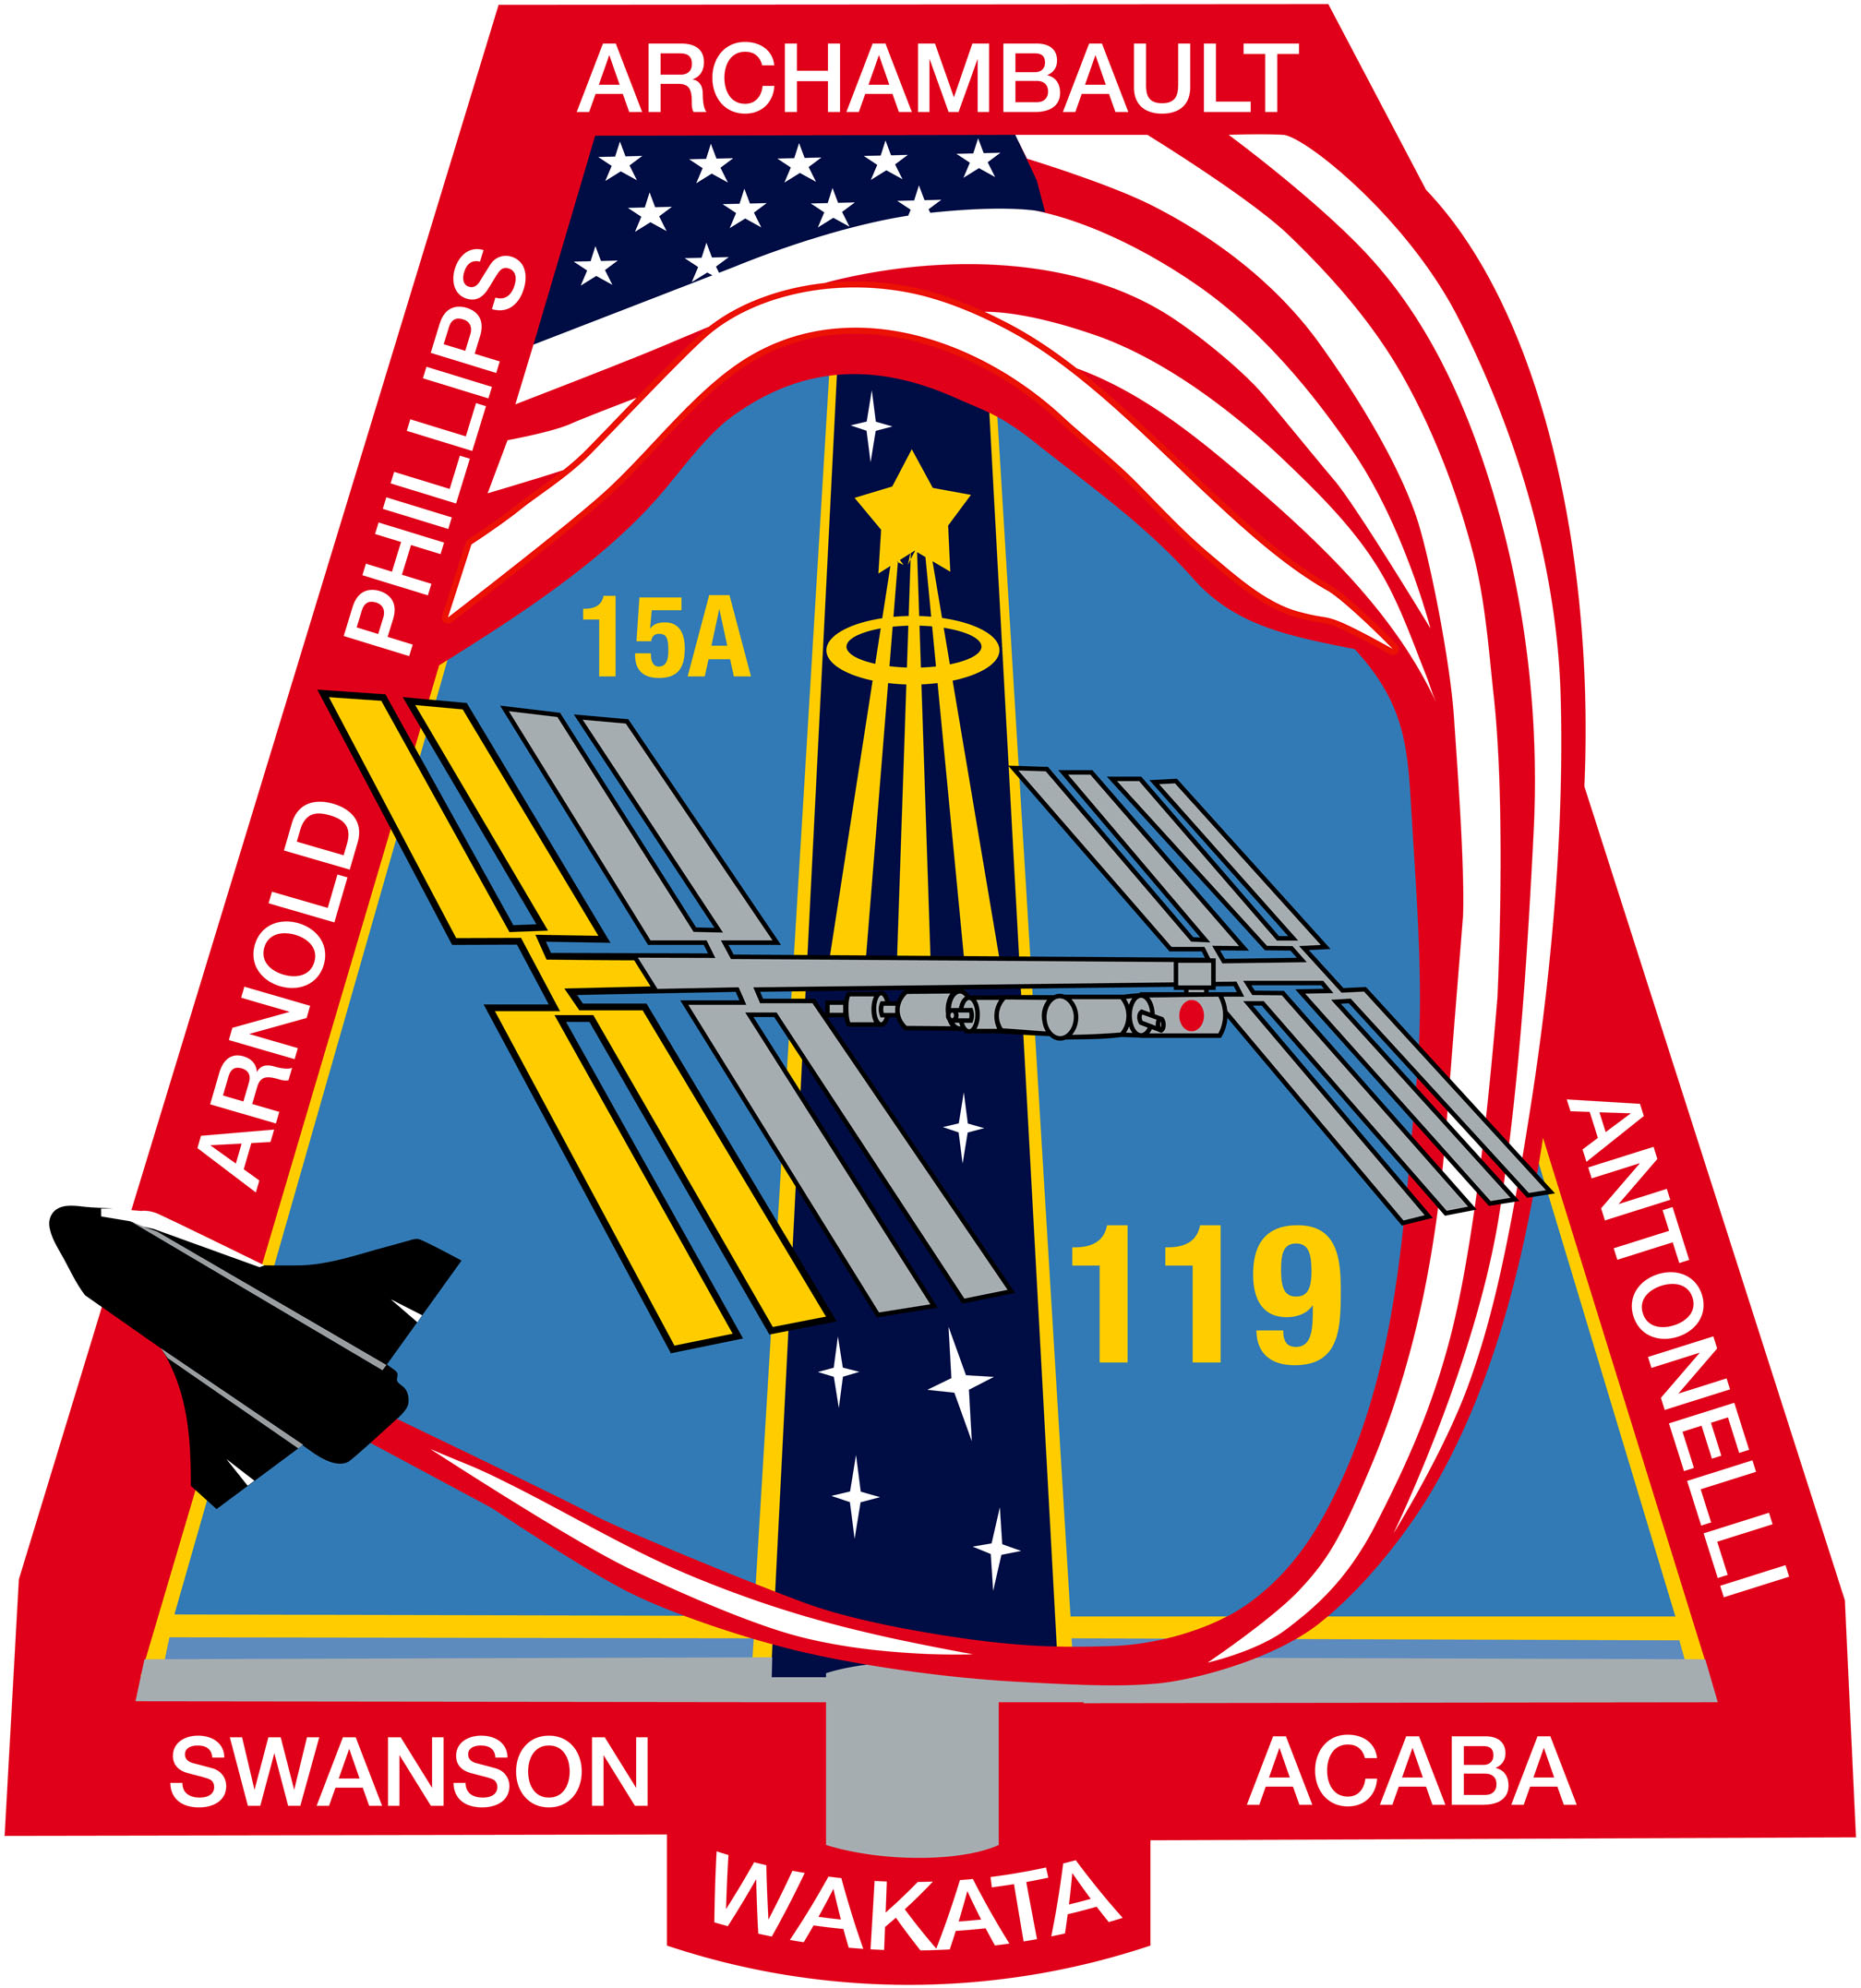 http://upload.wikimedia.org/wikipedia/commons/9/97/STS-119_insignia.jpg